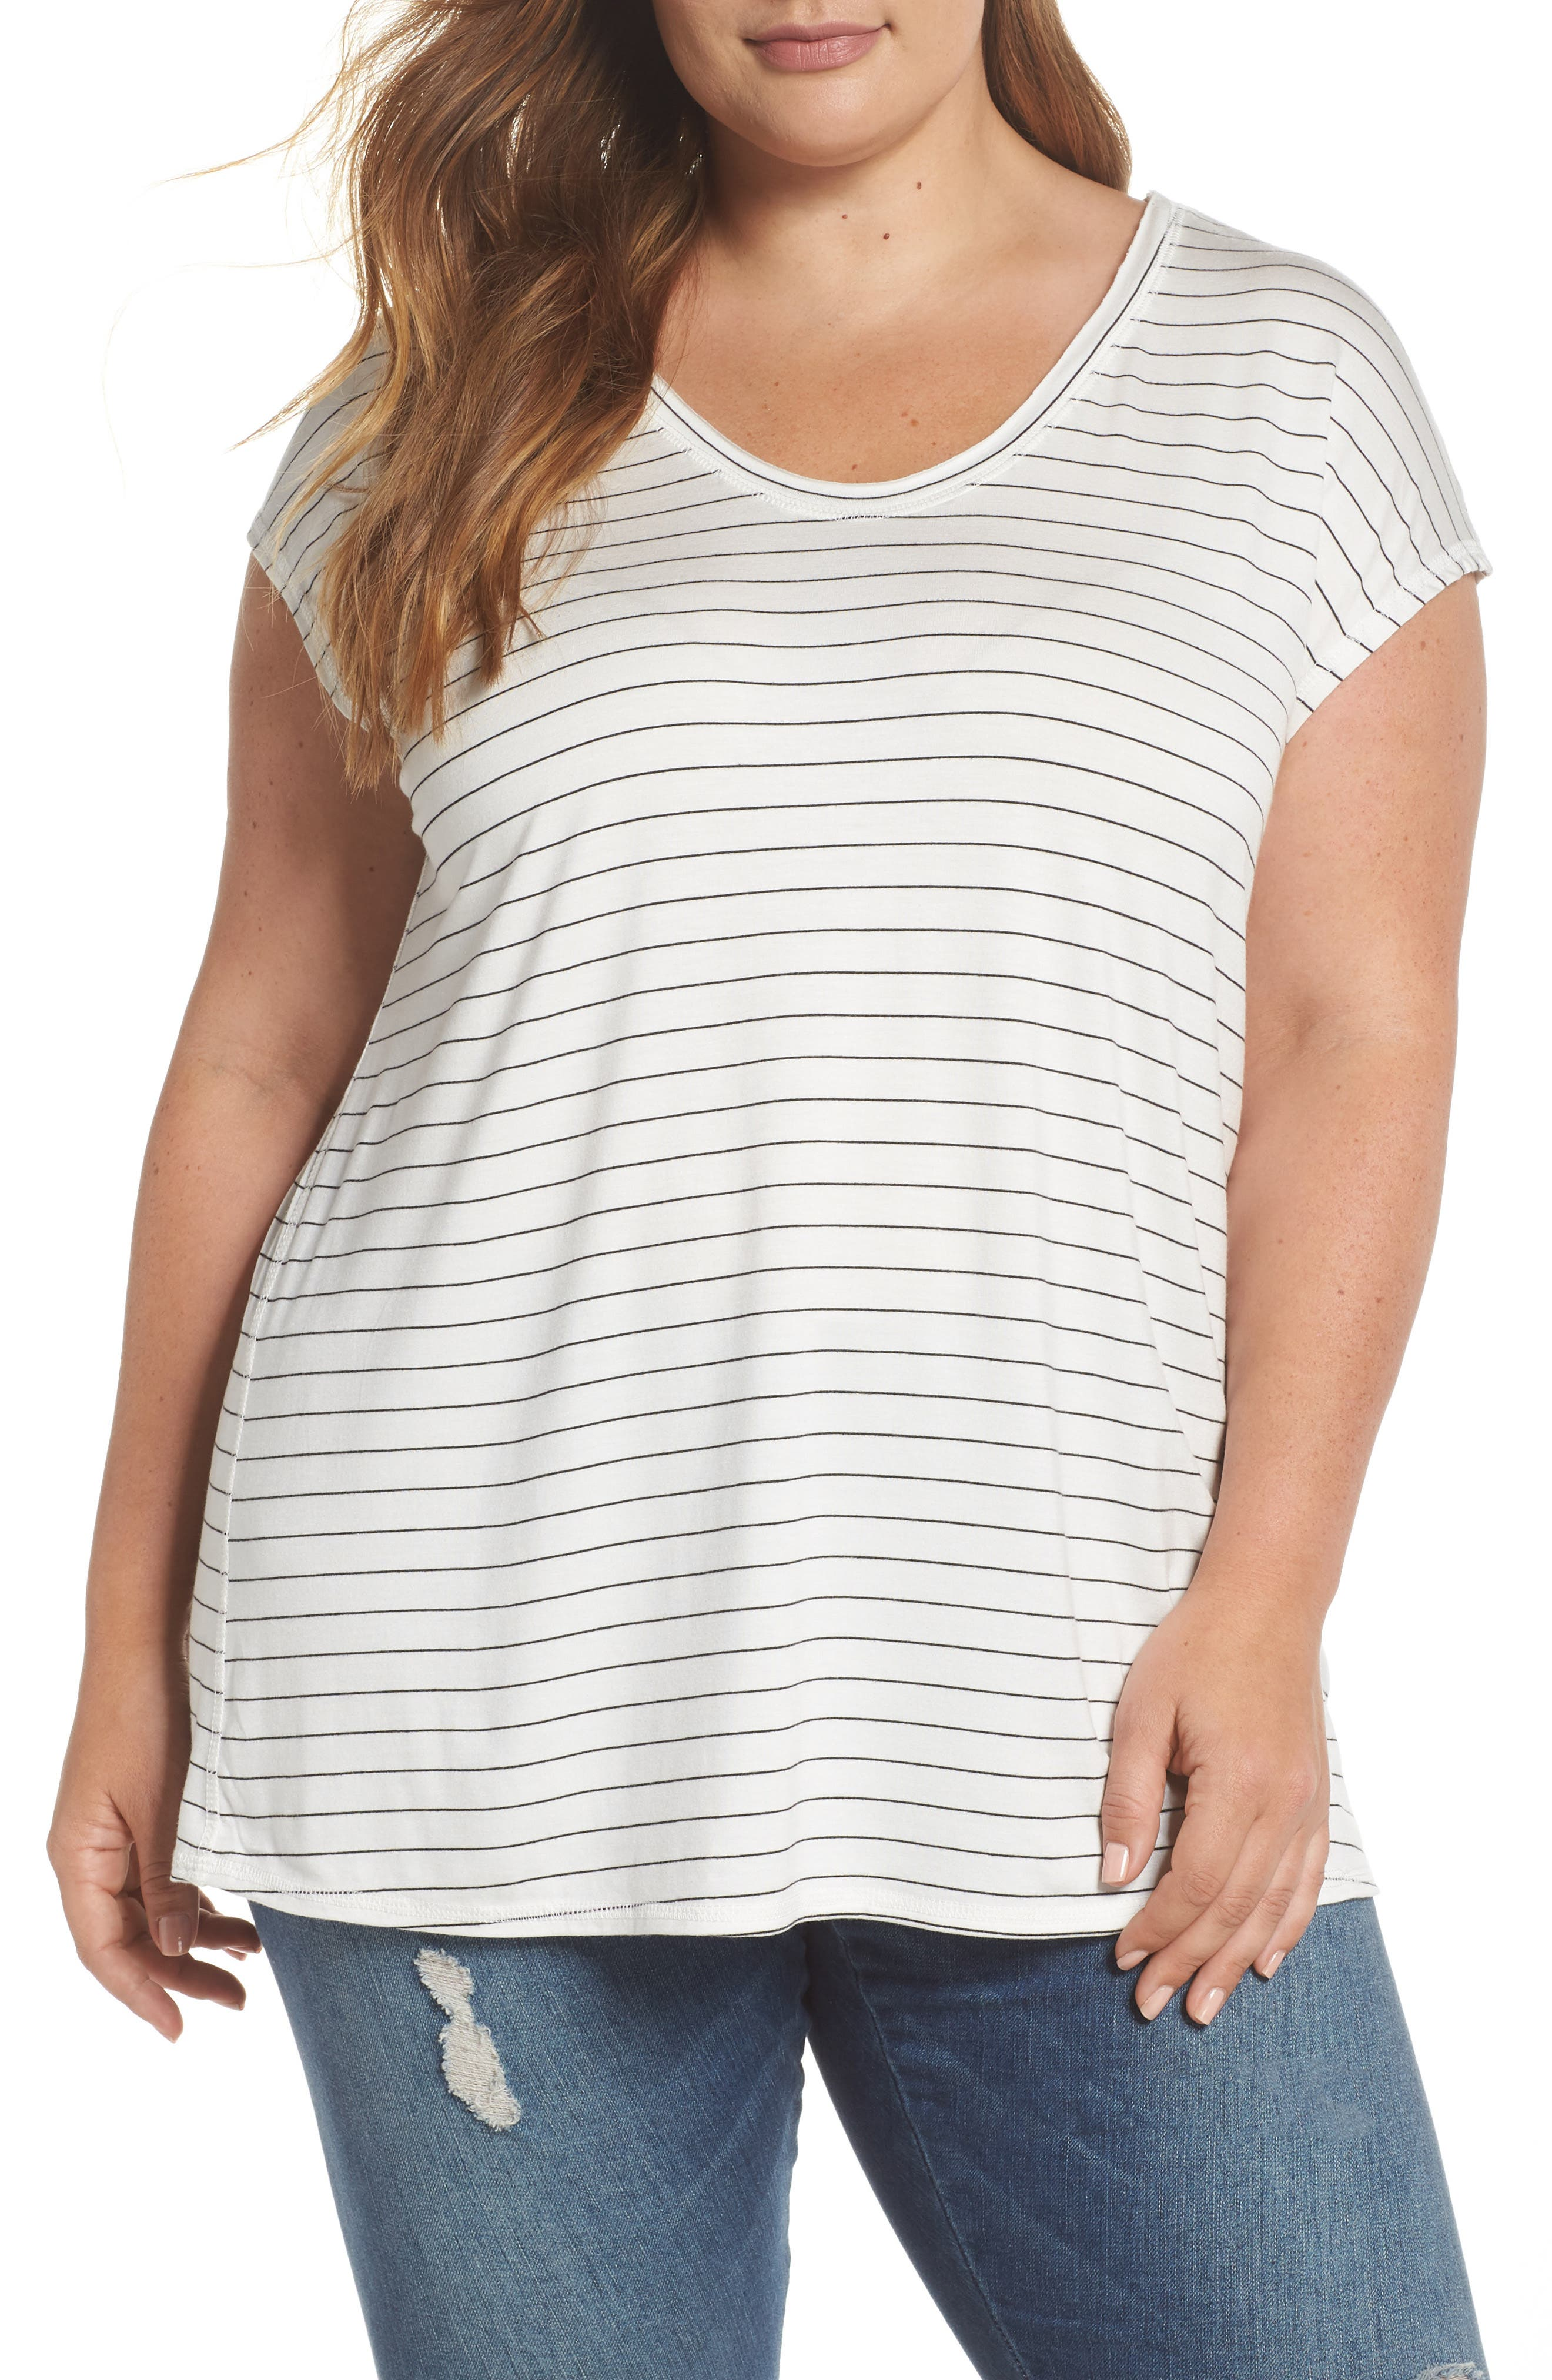 Off-Duty Stretch Knit Top,                         Main,                         color, 001